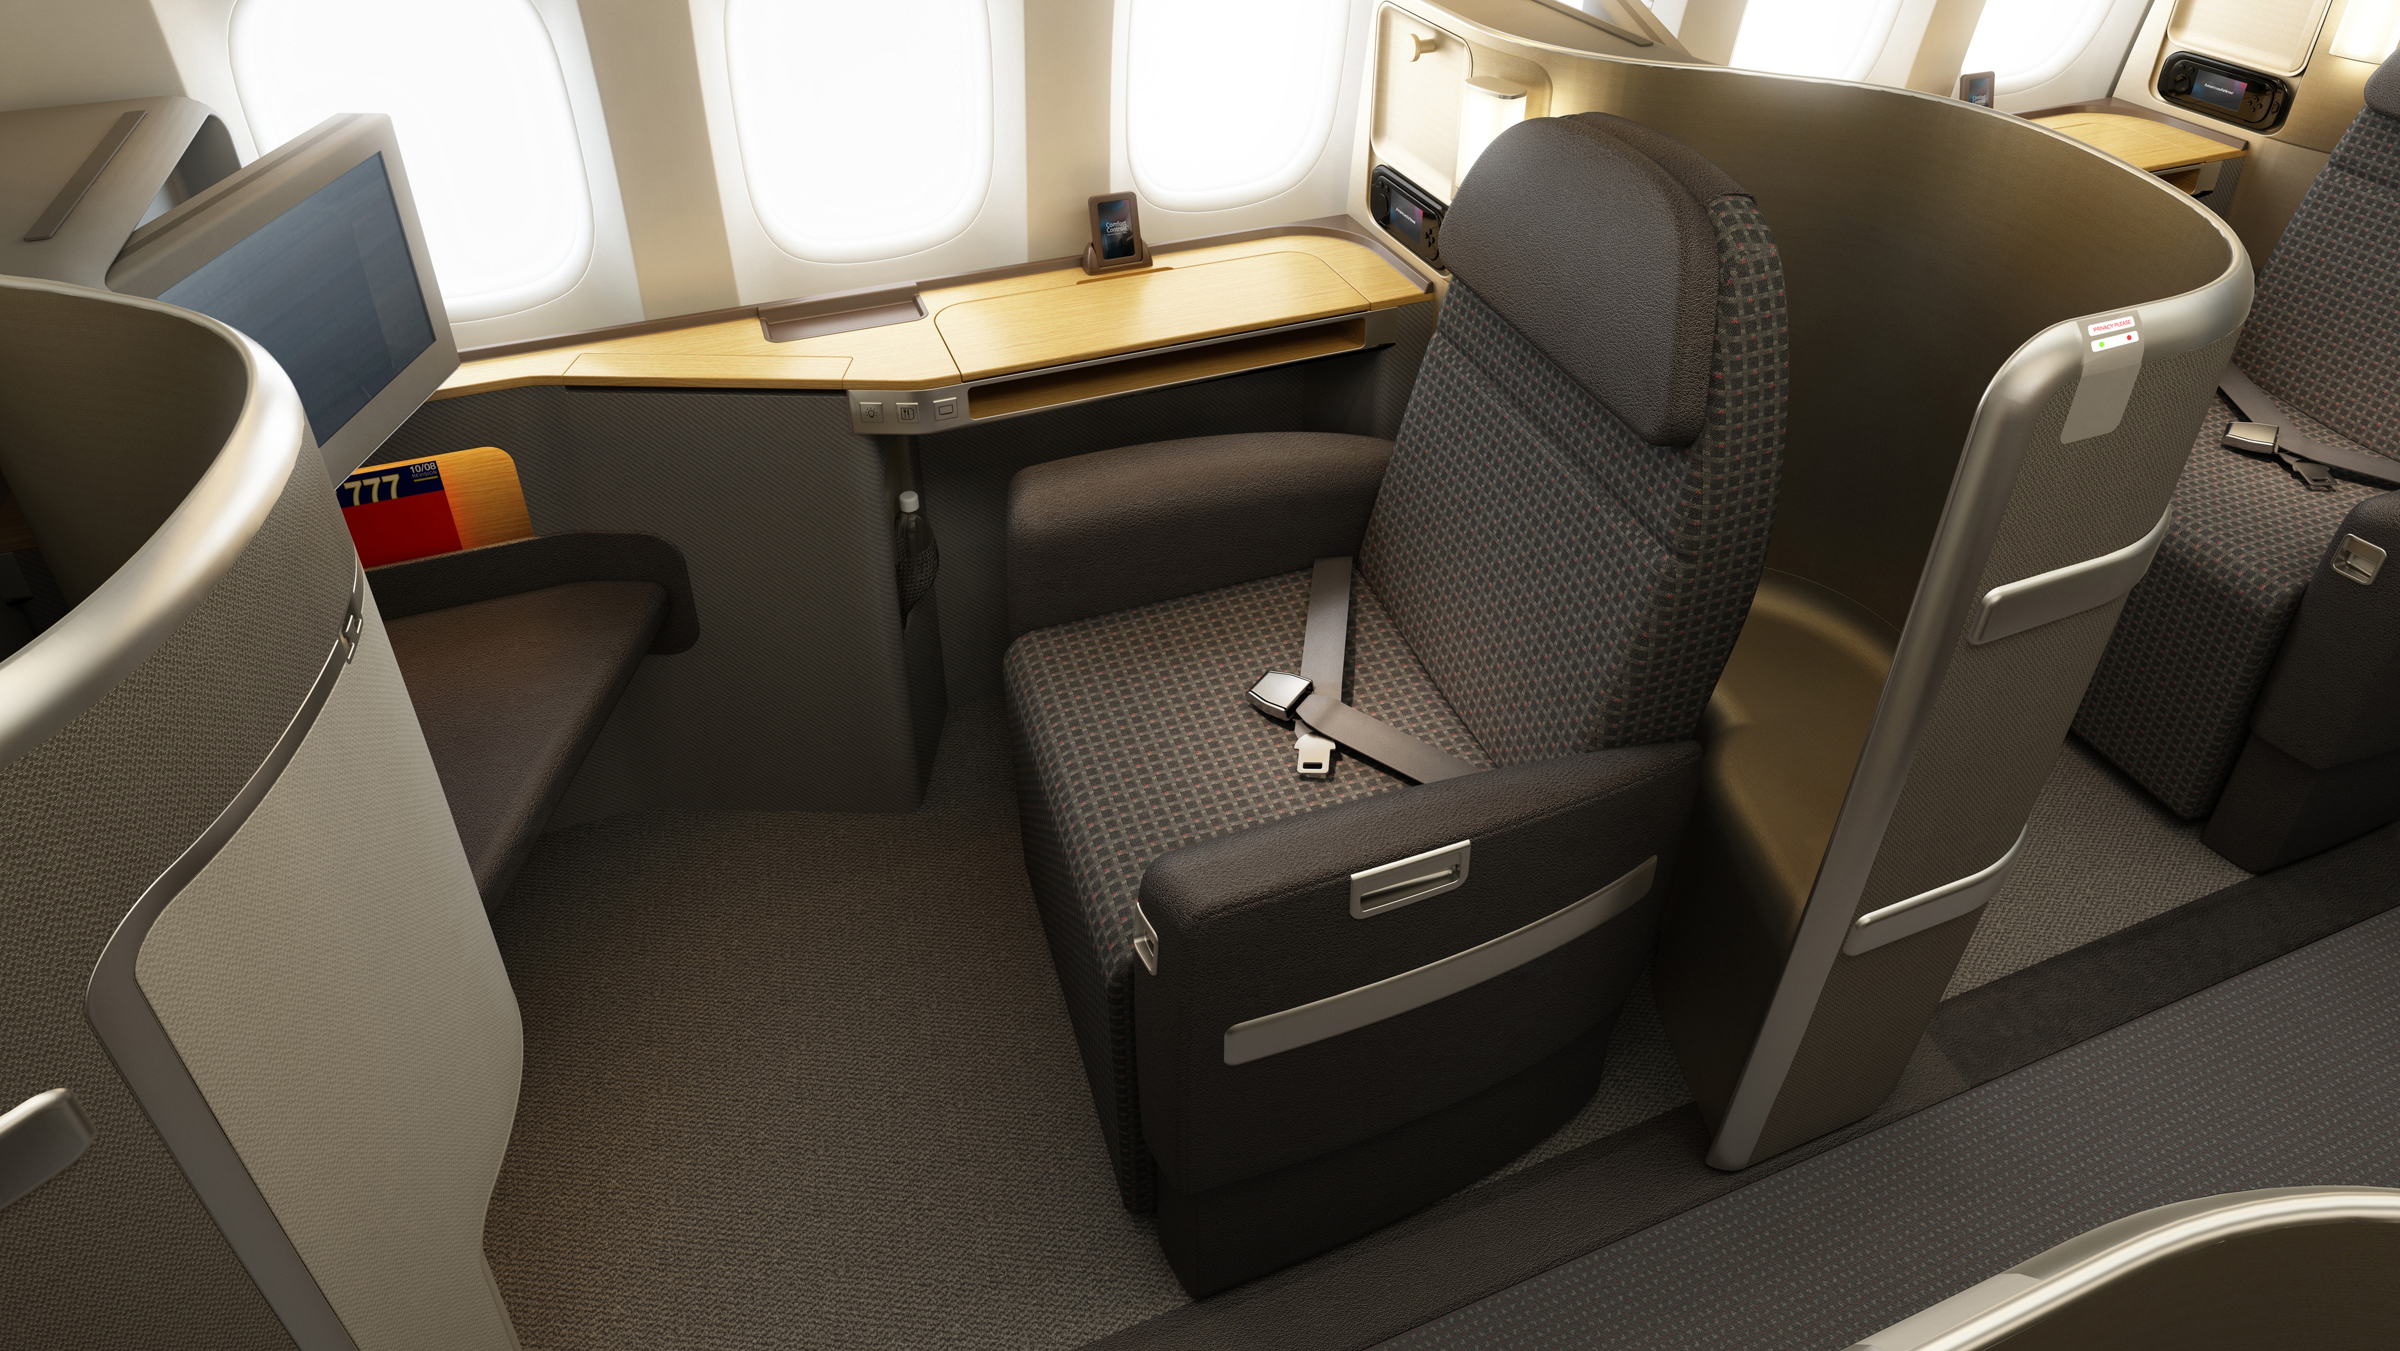 A different take on the new American Airlines 777-300ER interior